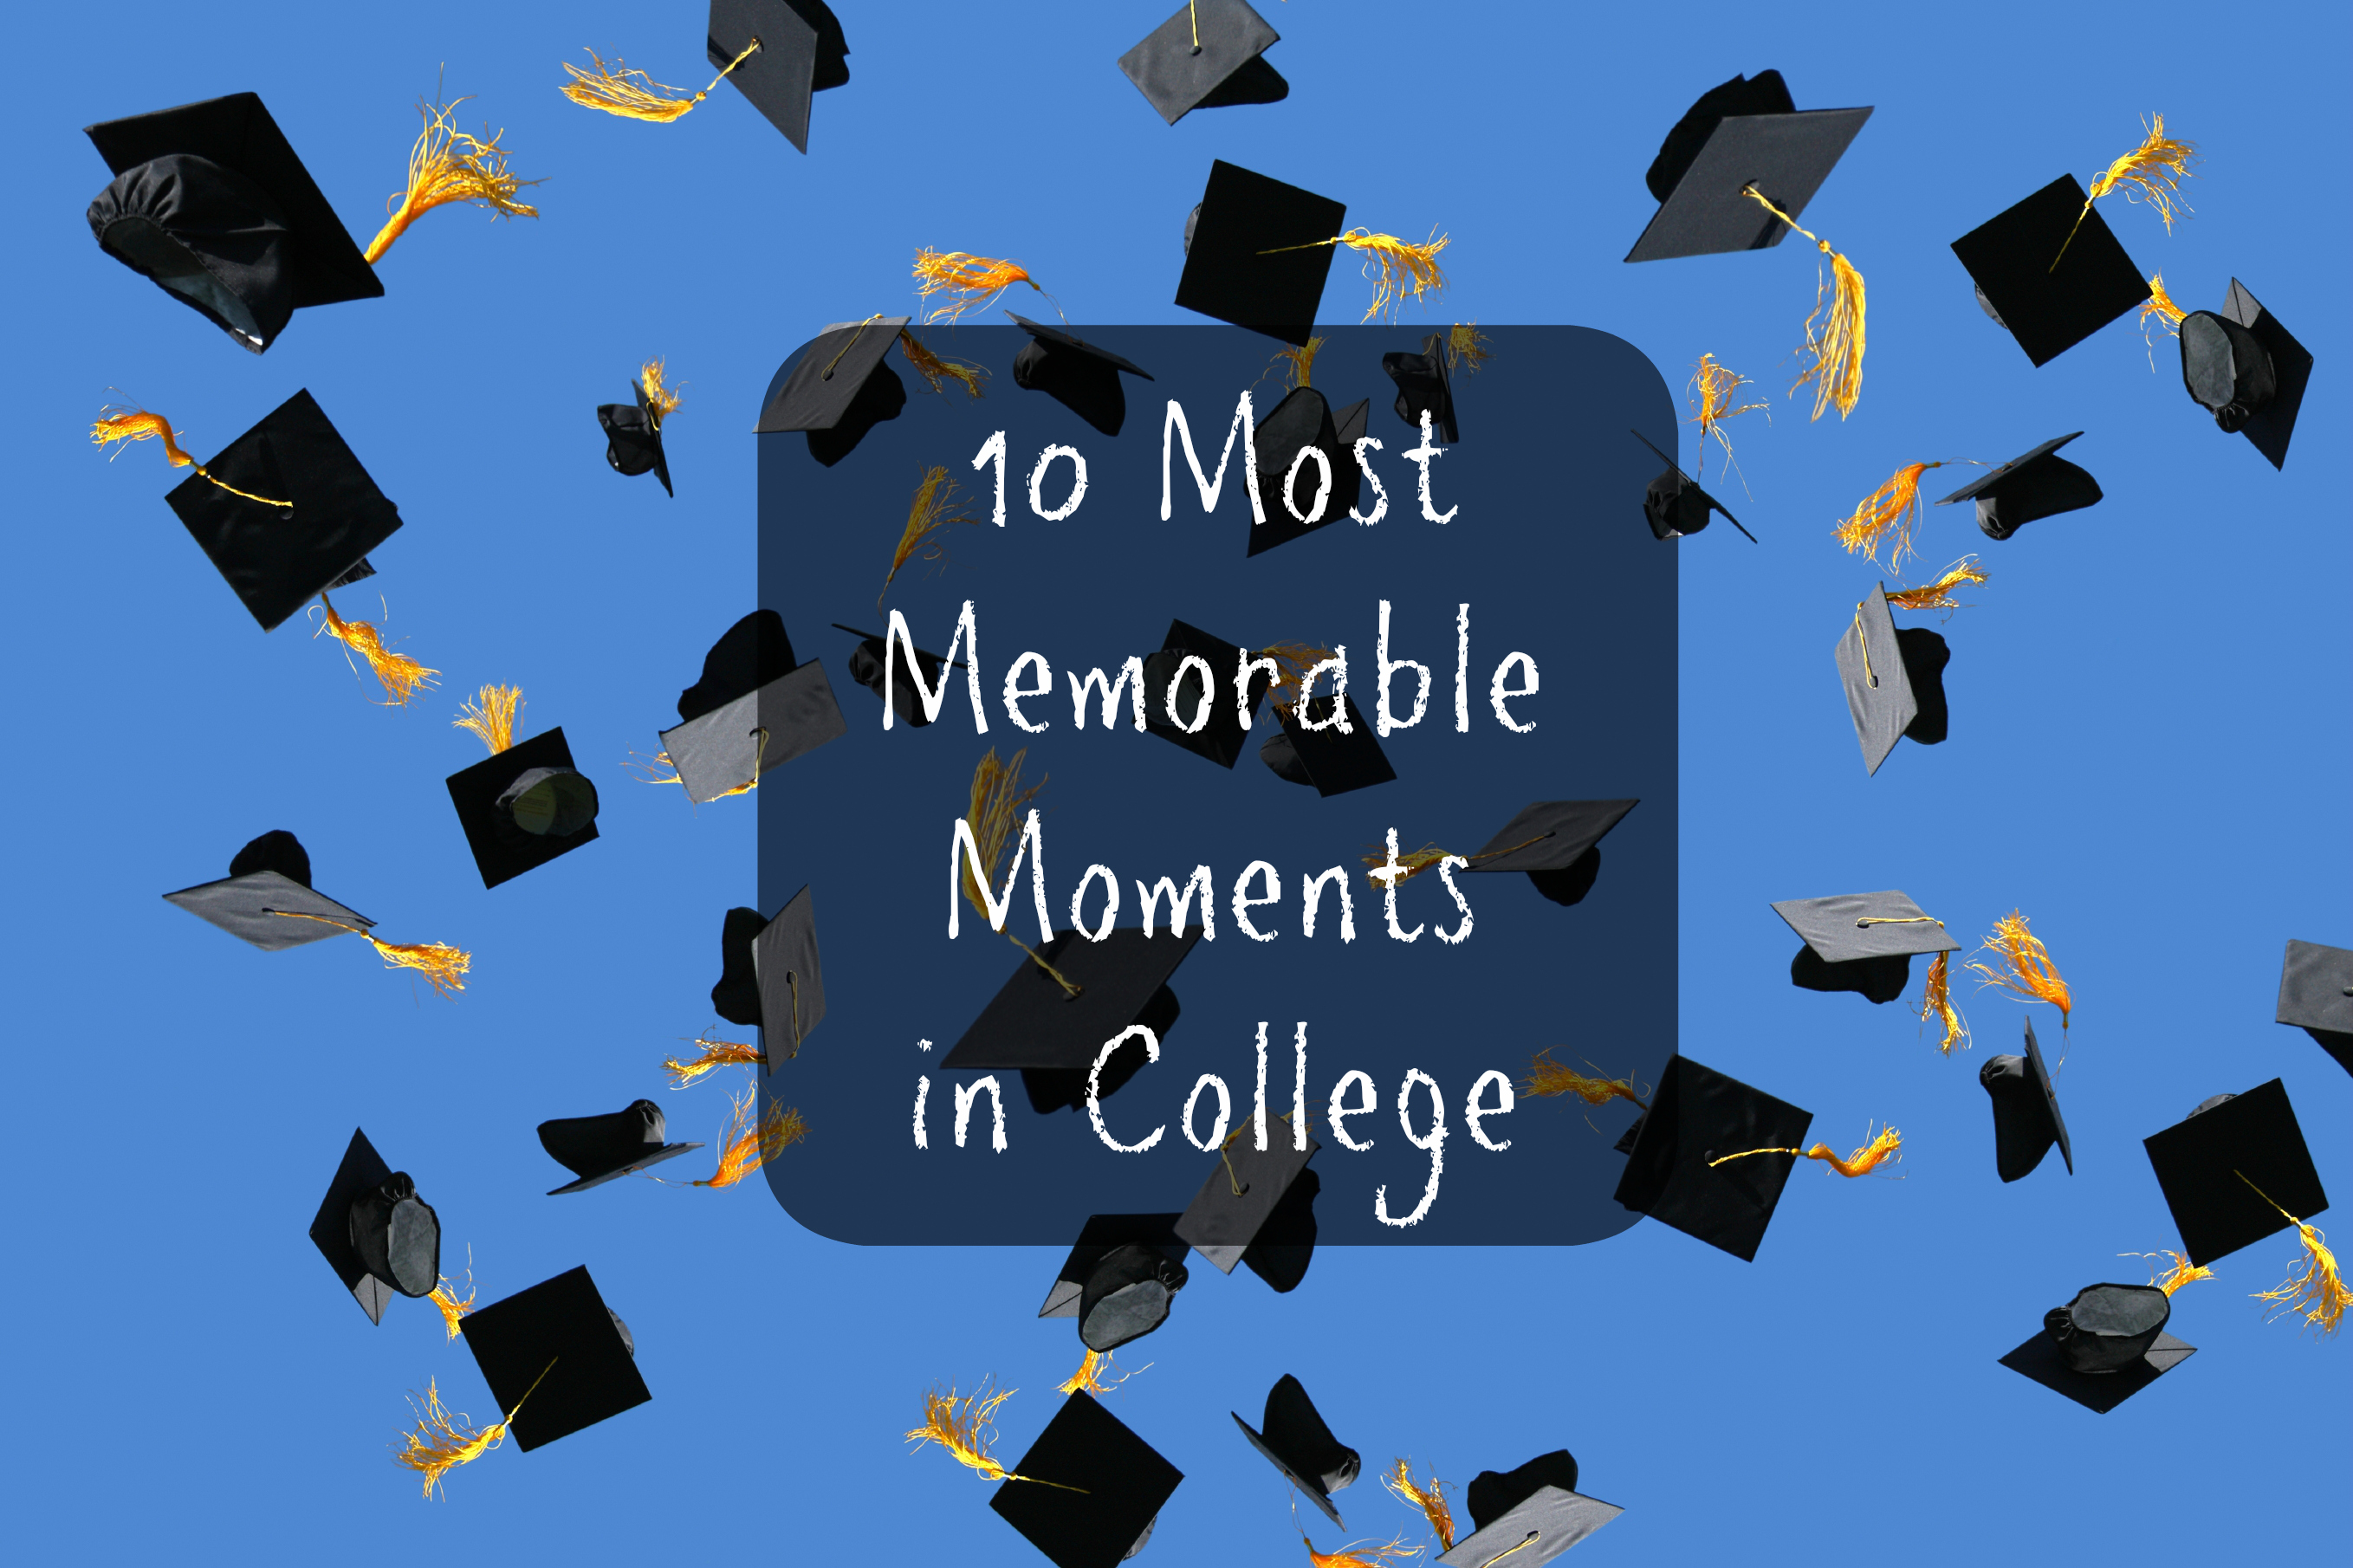 10 most memorable moments in college throwbackthursday a 10 most memorable moments in college throwbackthursday a deecoded life